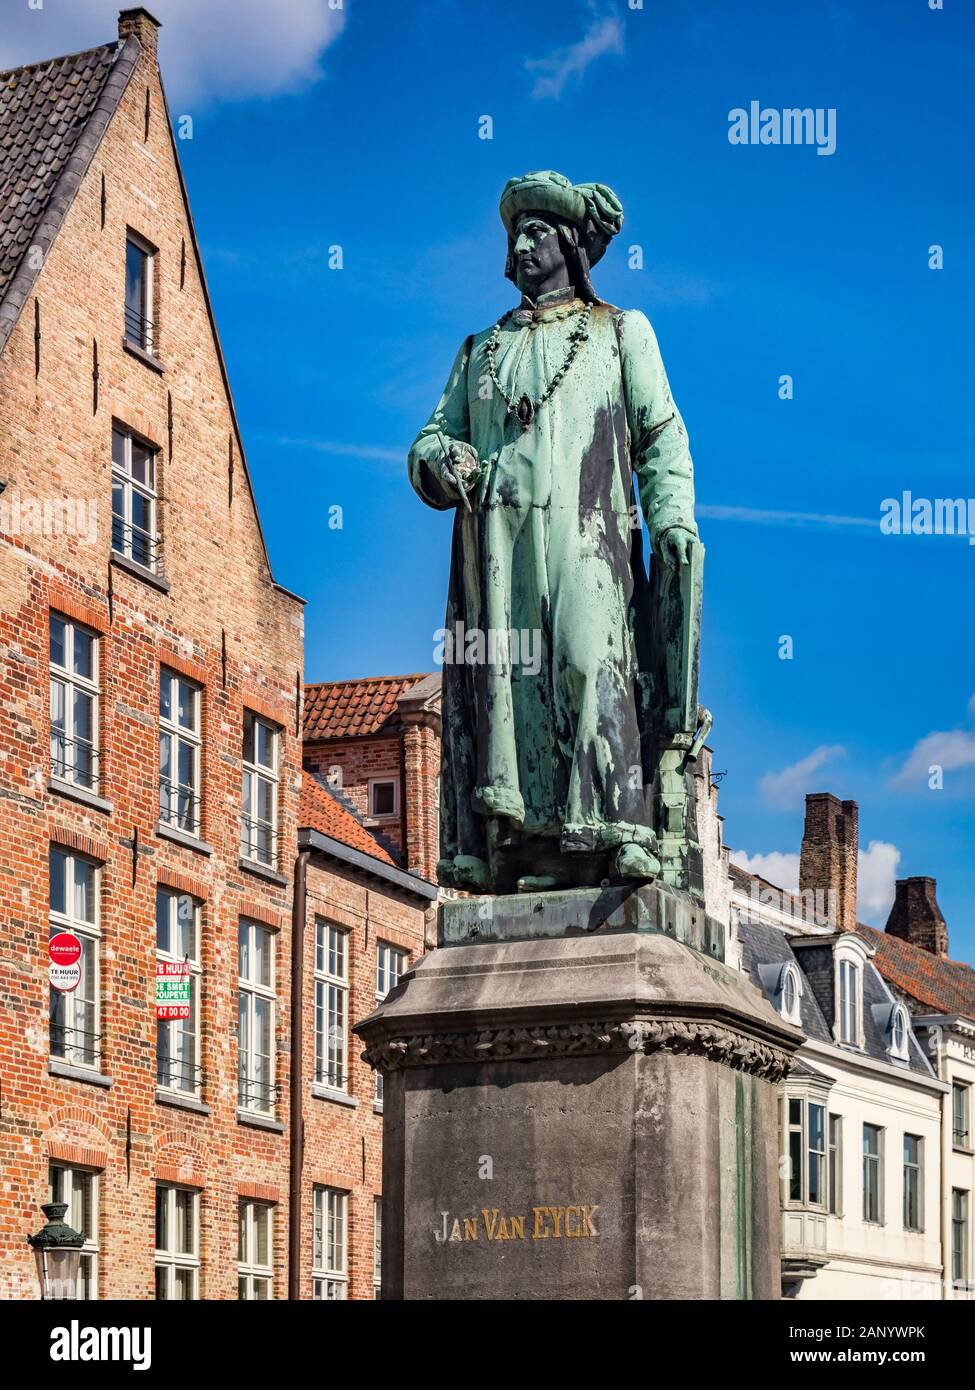 25 September 2018: Bruges, Belgium - Statue of the 15th century painter, Jan van Eyck, standing in the square which bears his name in Bruges. Stock Photo